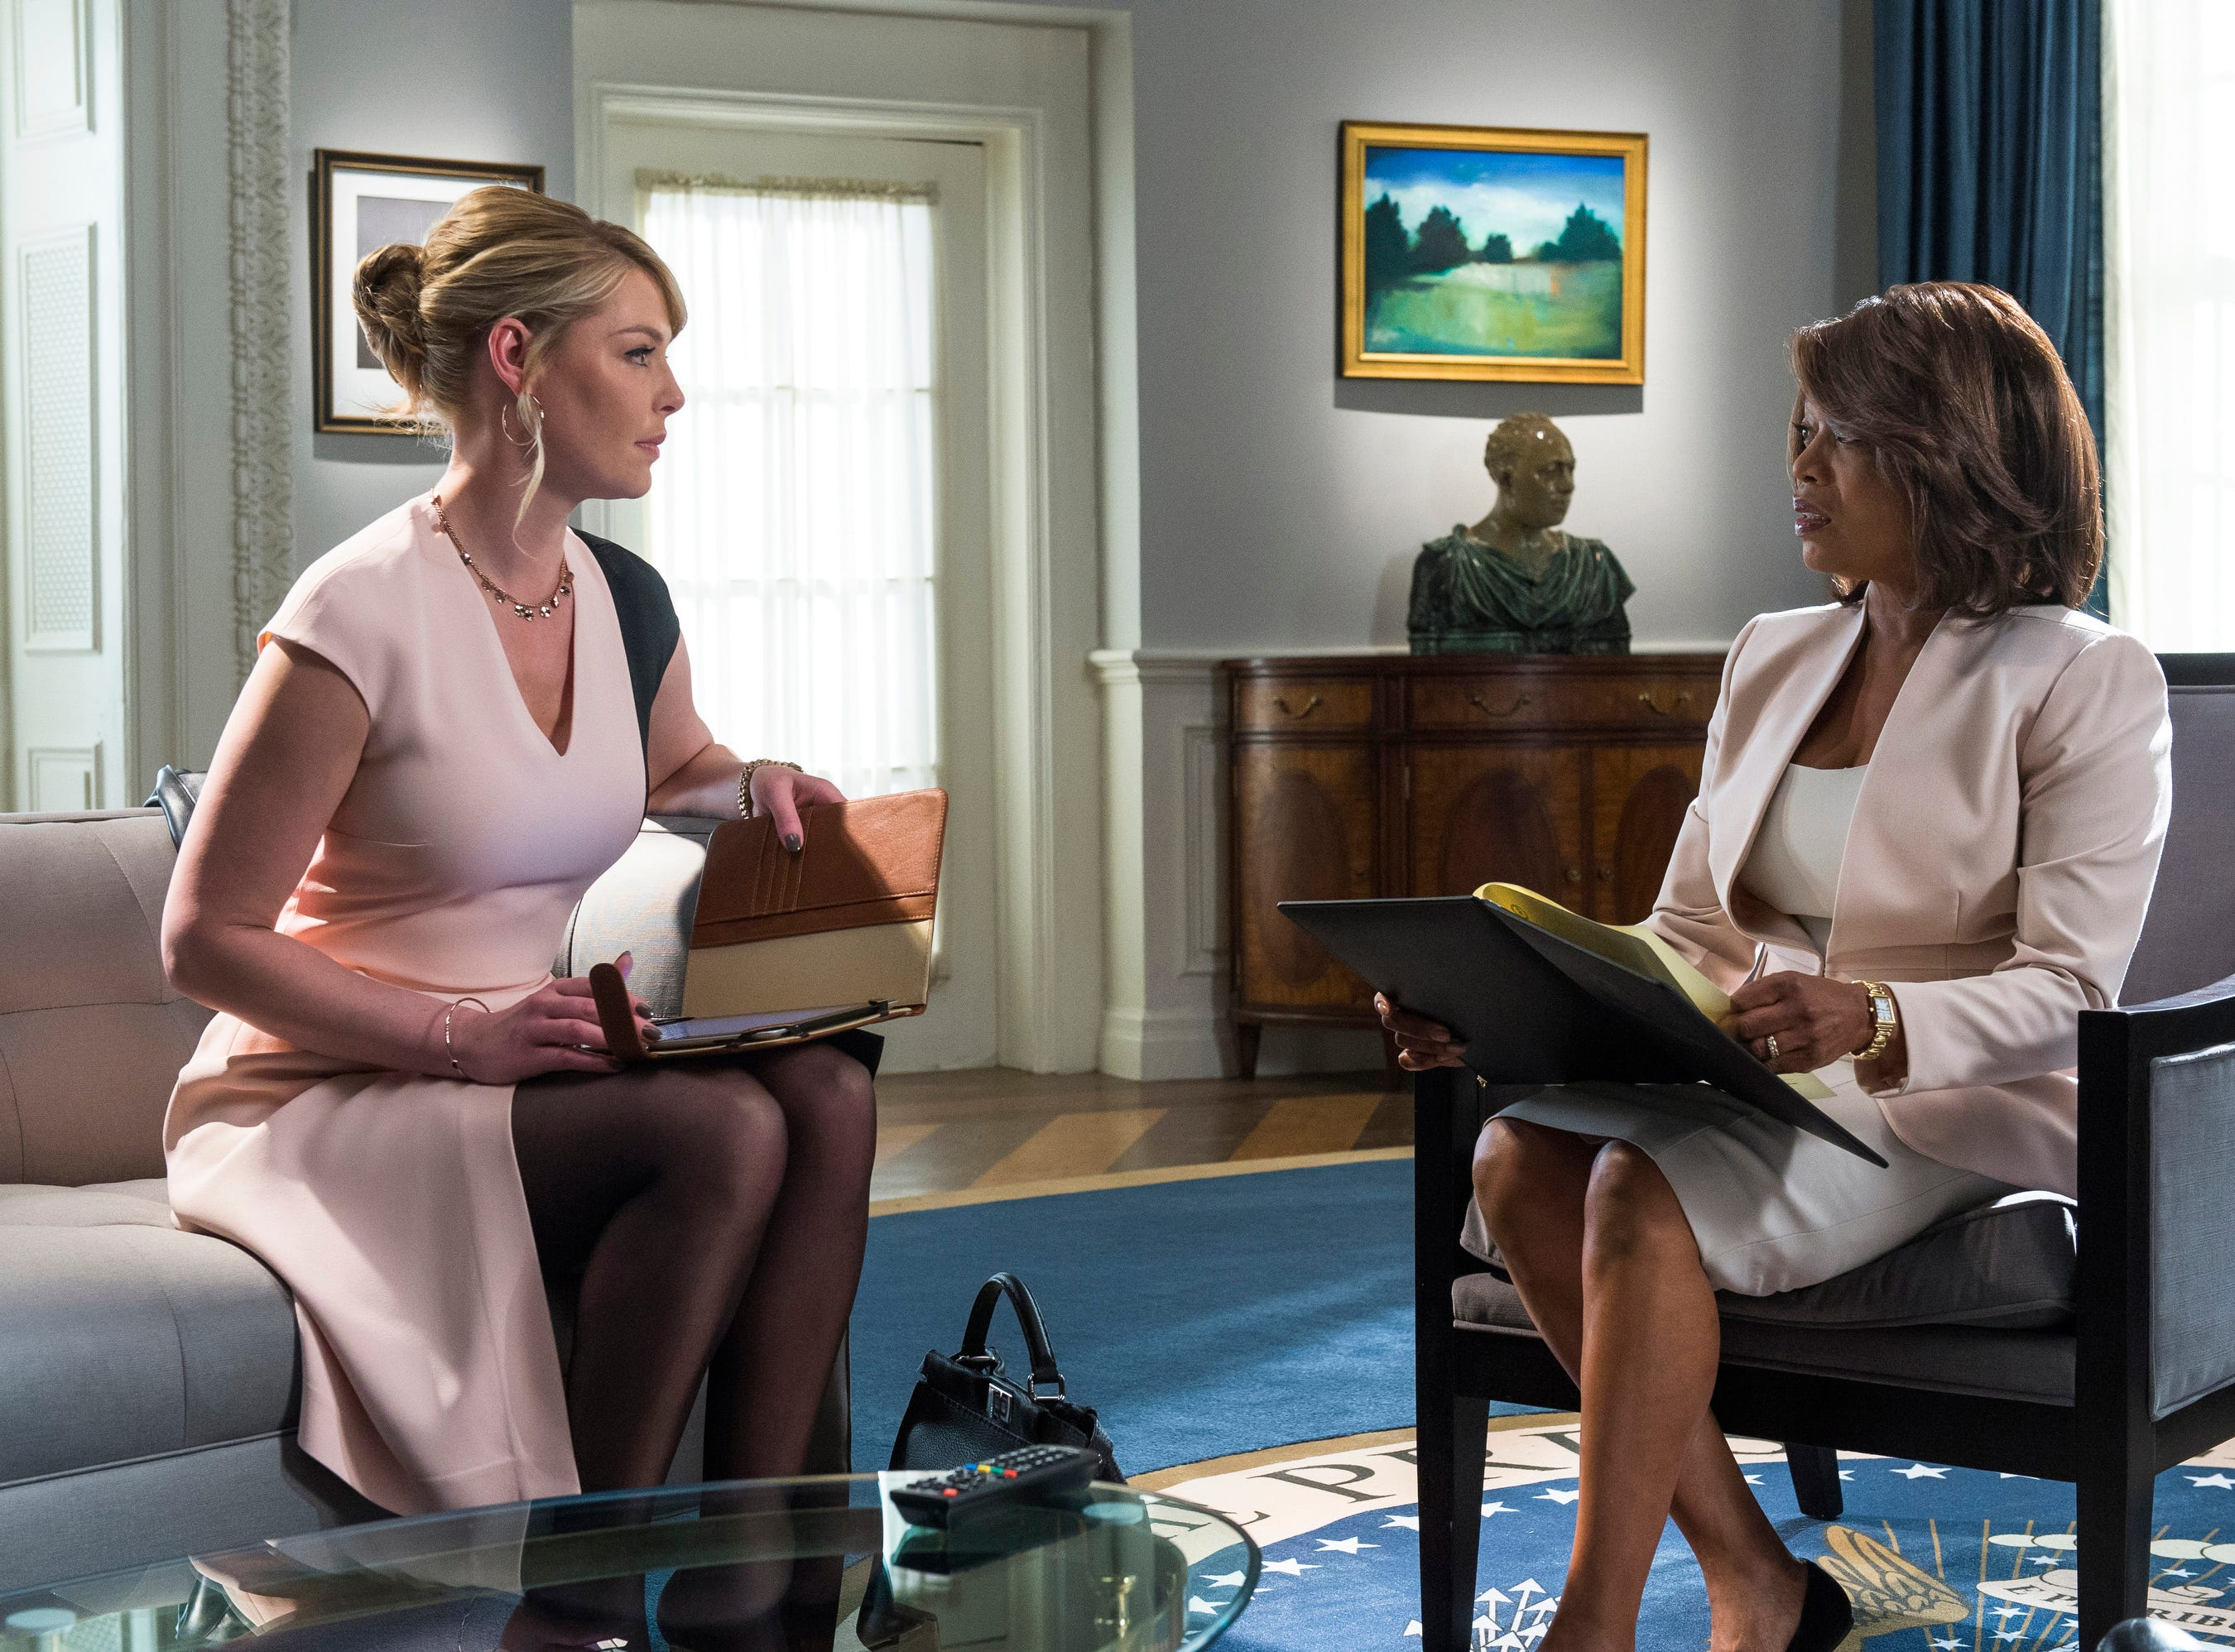 """State of Affairs"" (NBC, 2014-15): Katherine Heigl portrayed CIA analyst Charleston Tucker, who assembled the daily briefings for President Constance Payton (Alfrie Woodard)."